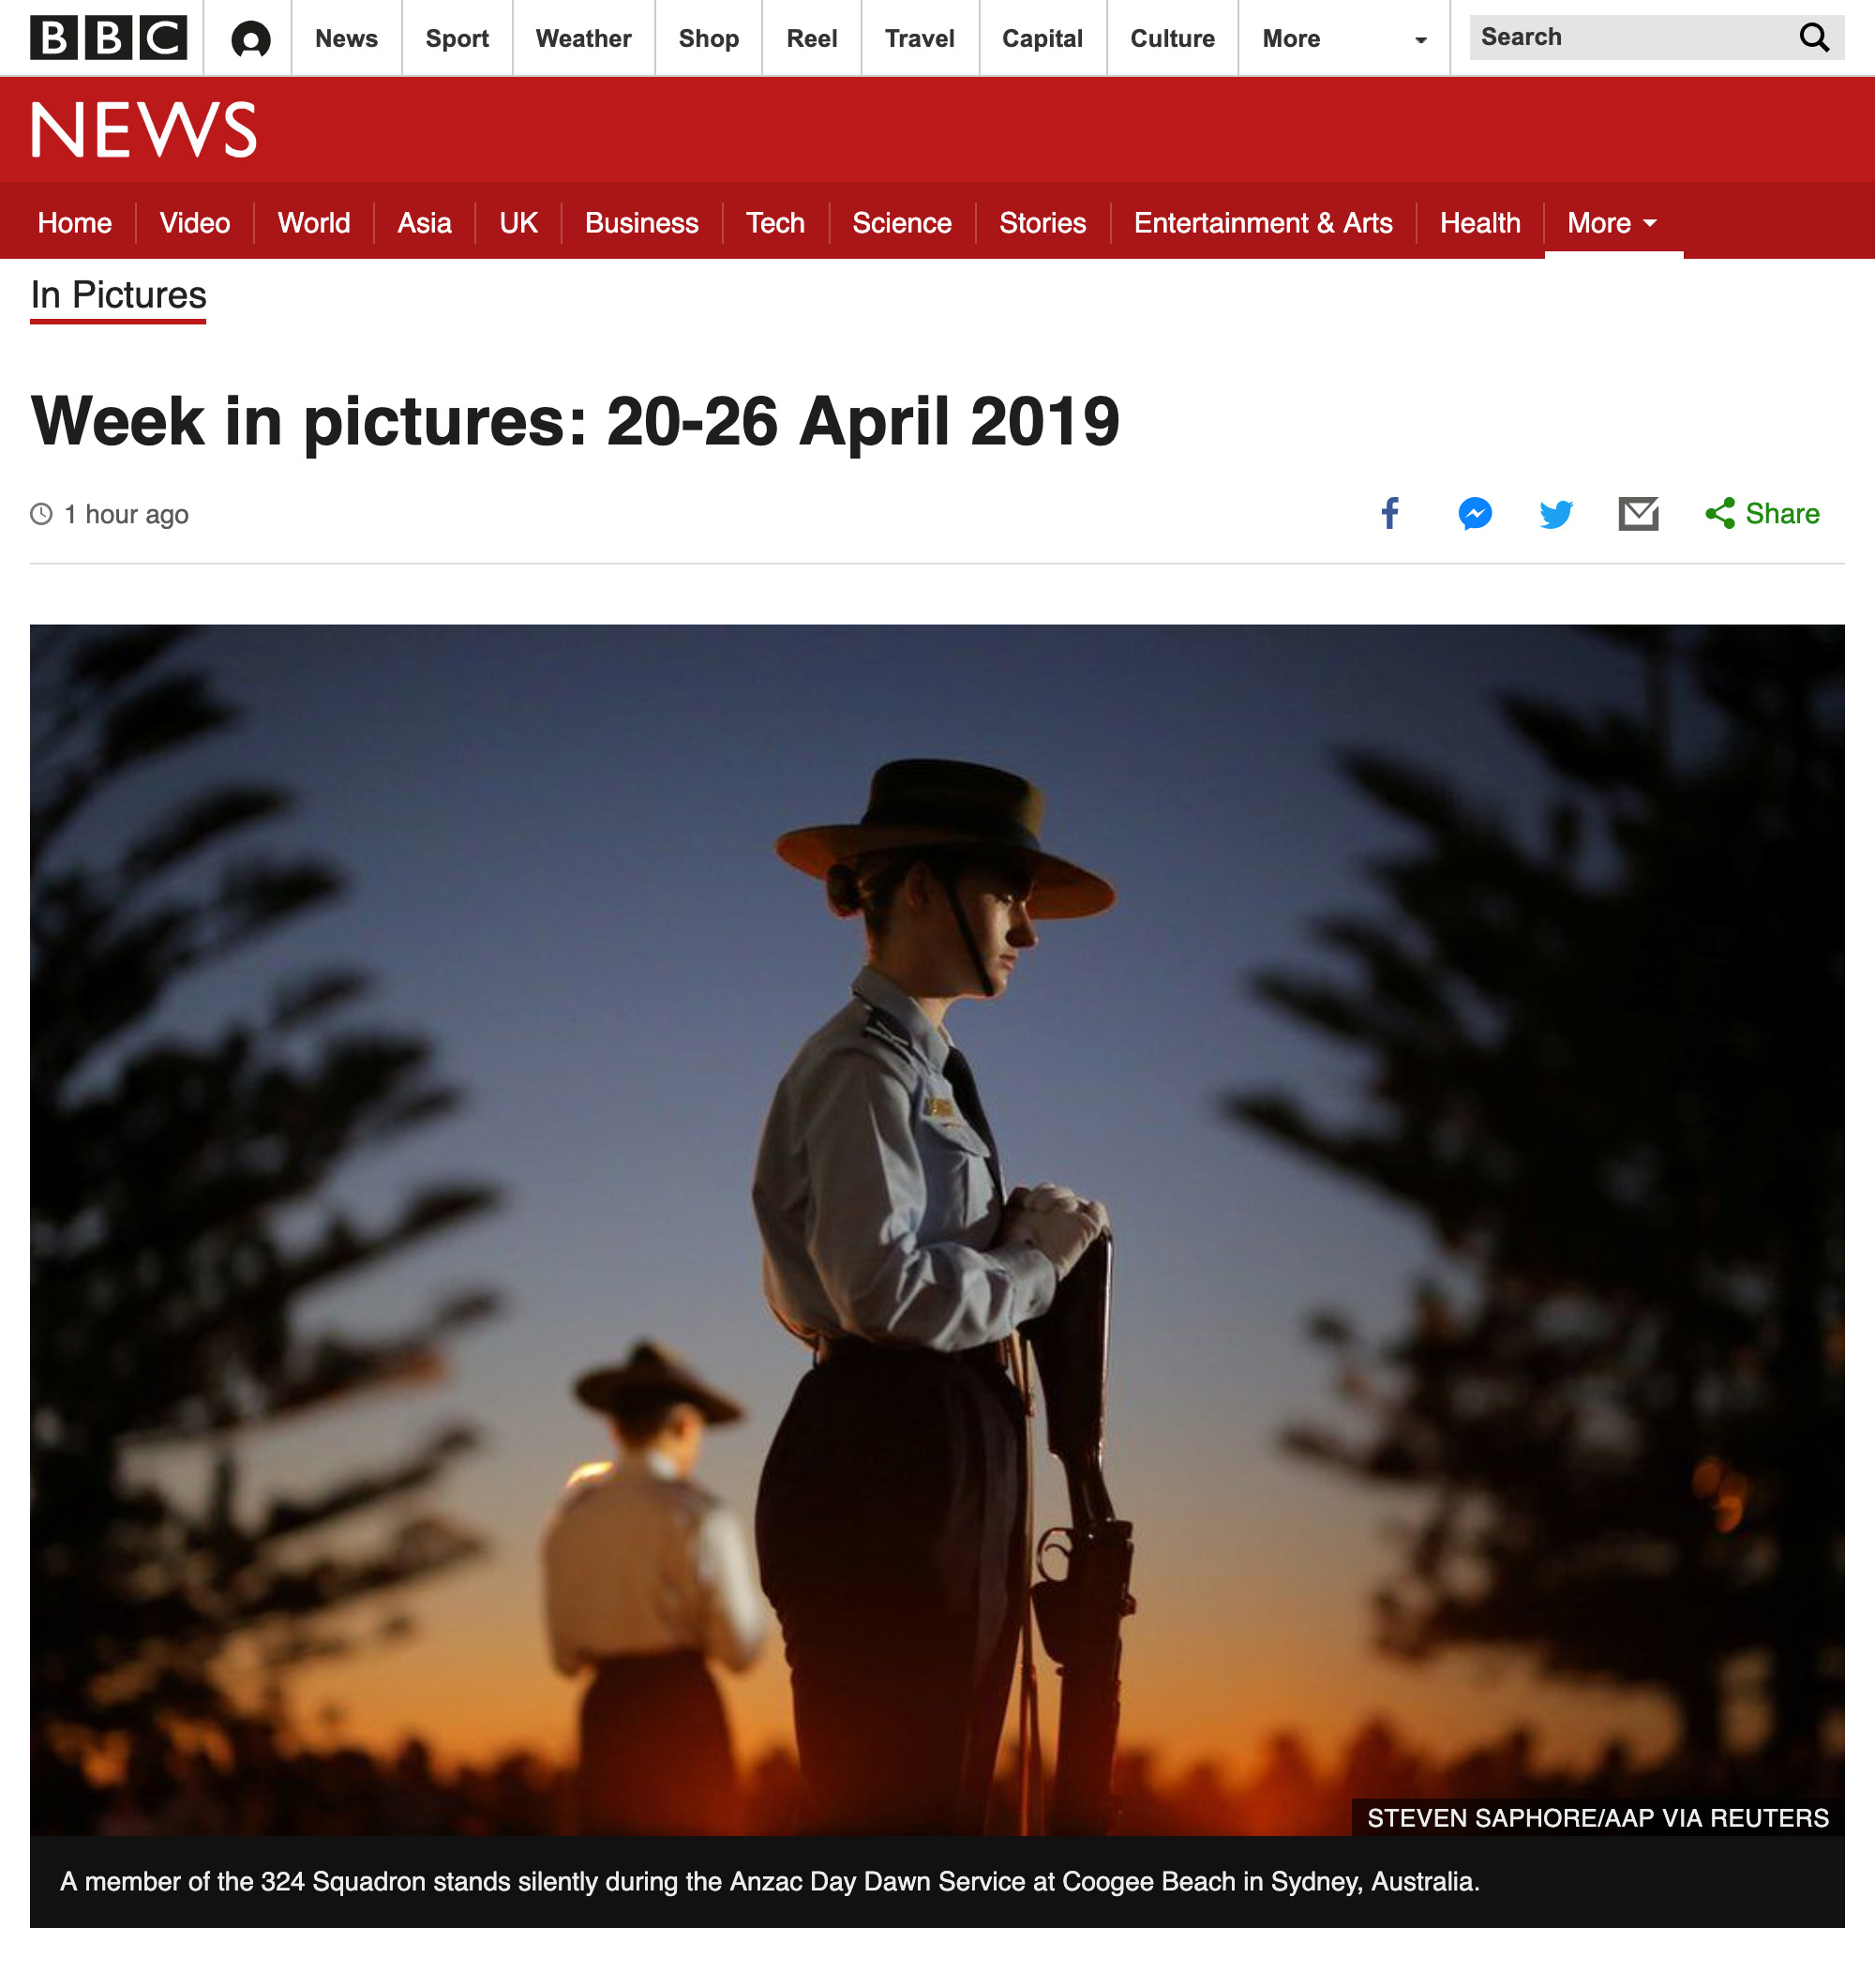 2019-04-20 www.bbc.com_news_in-pictures-48054167.jpg